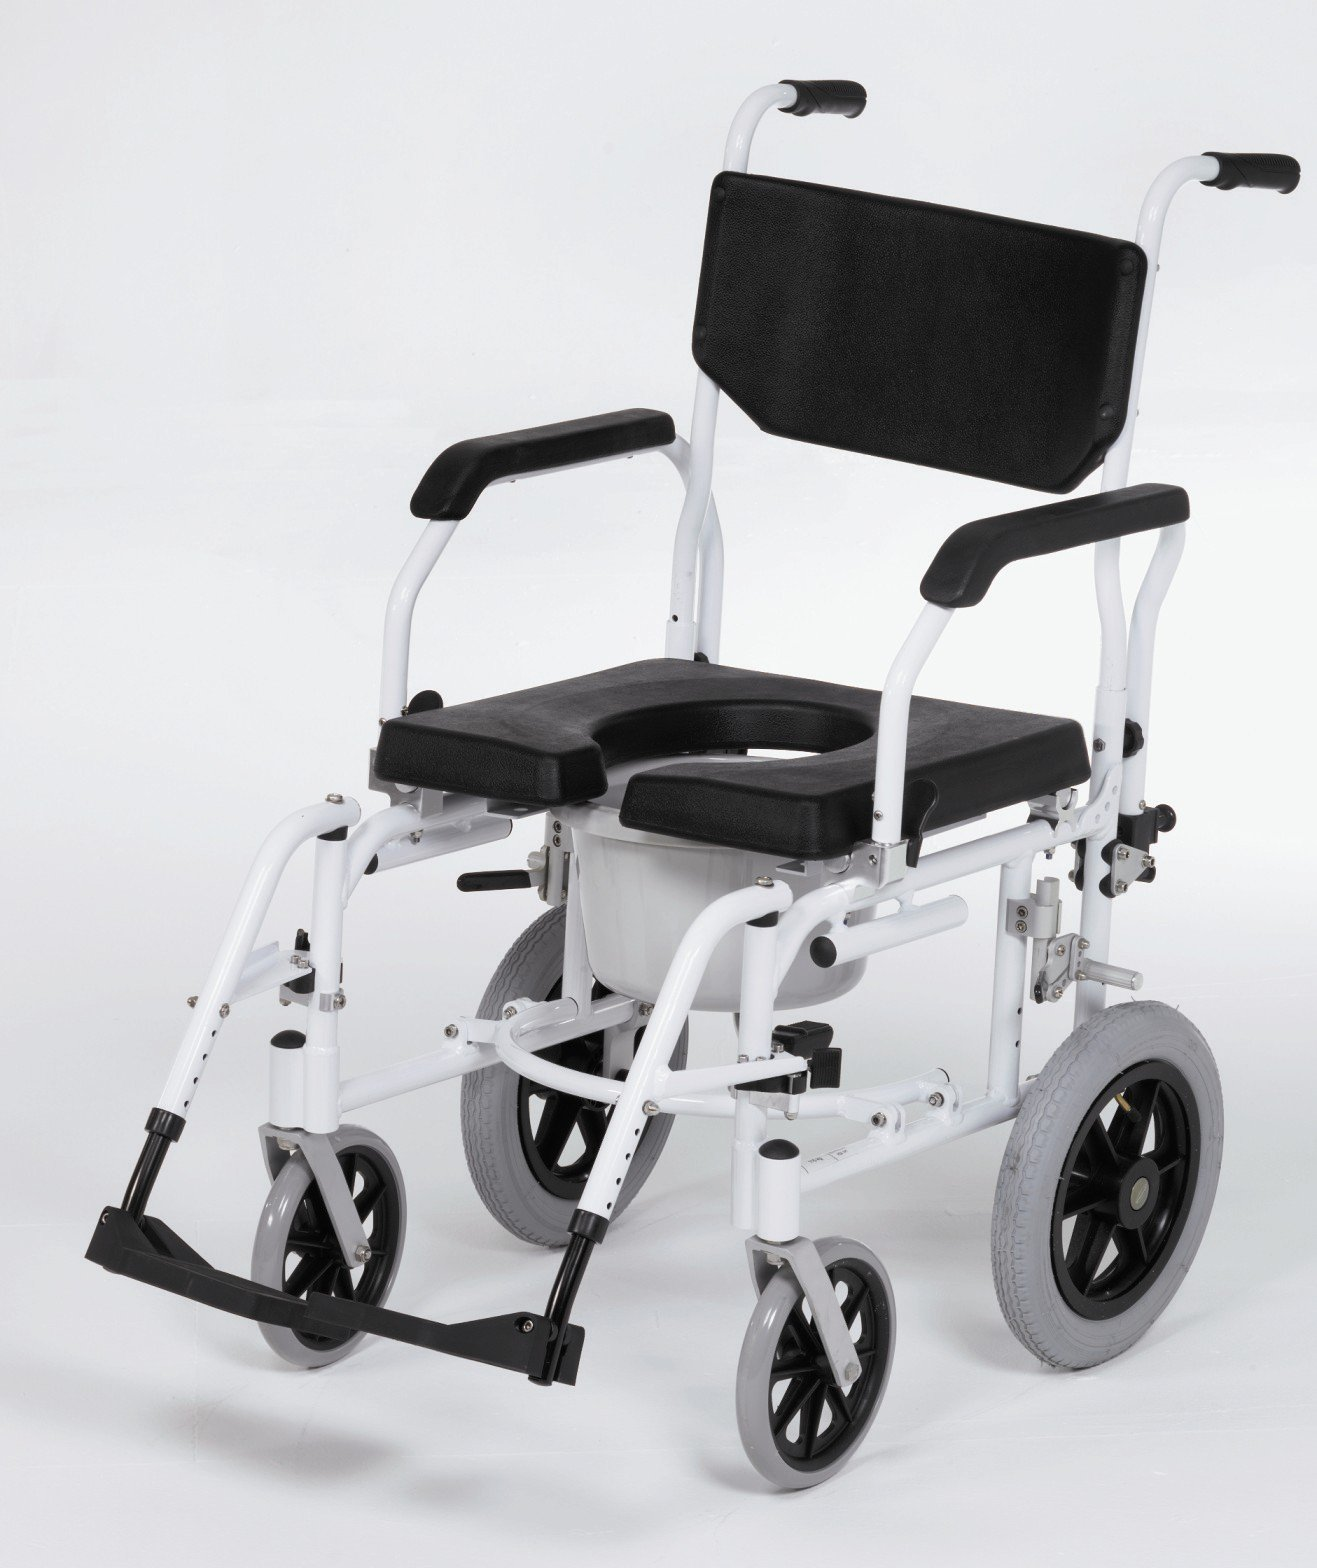 wheelchair with grey and black wheels